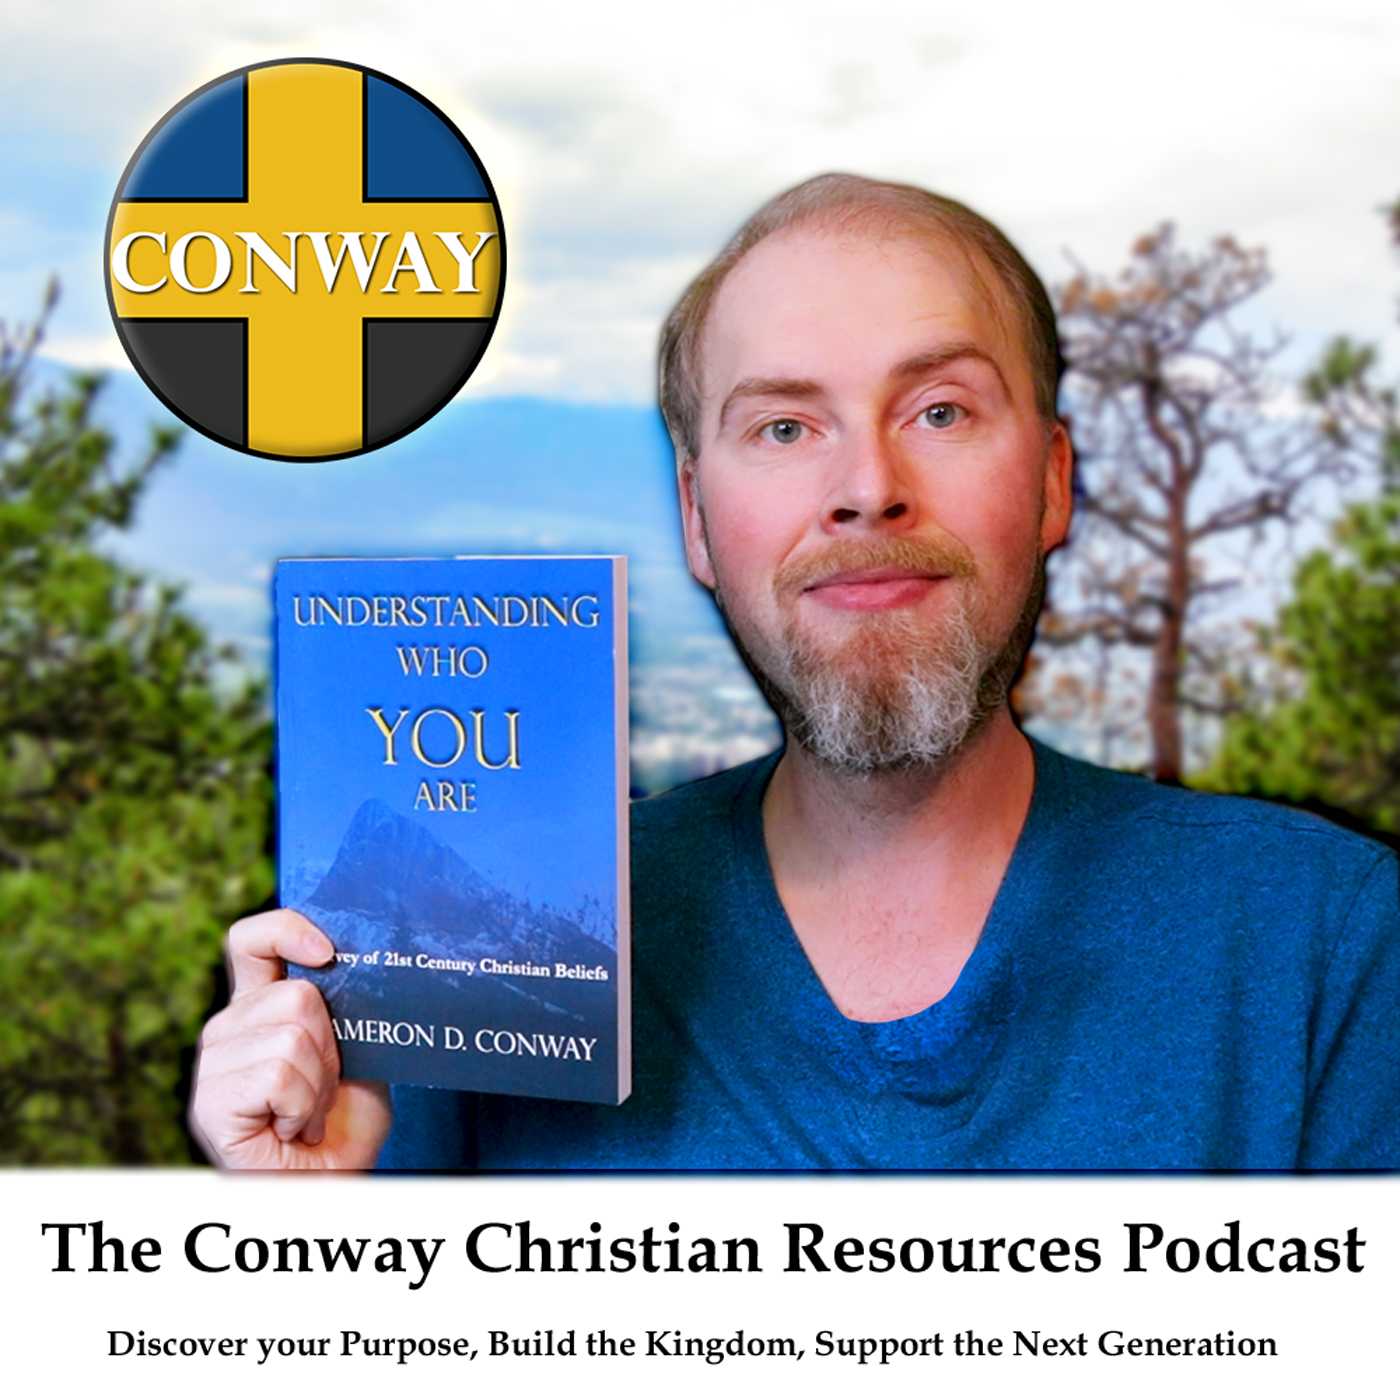 Conway Christian Resources Podcast